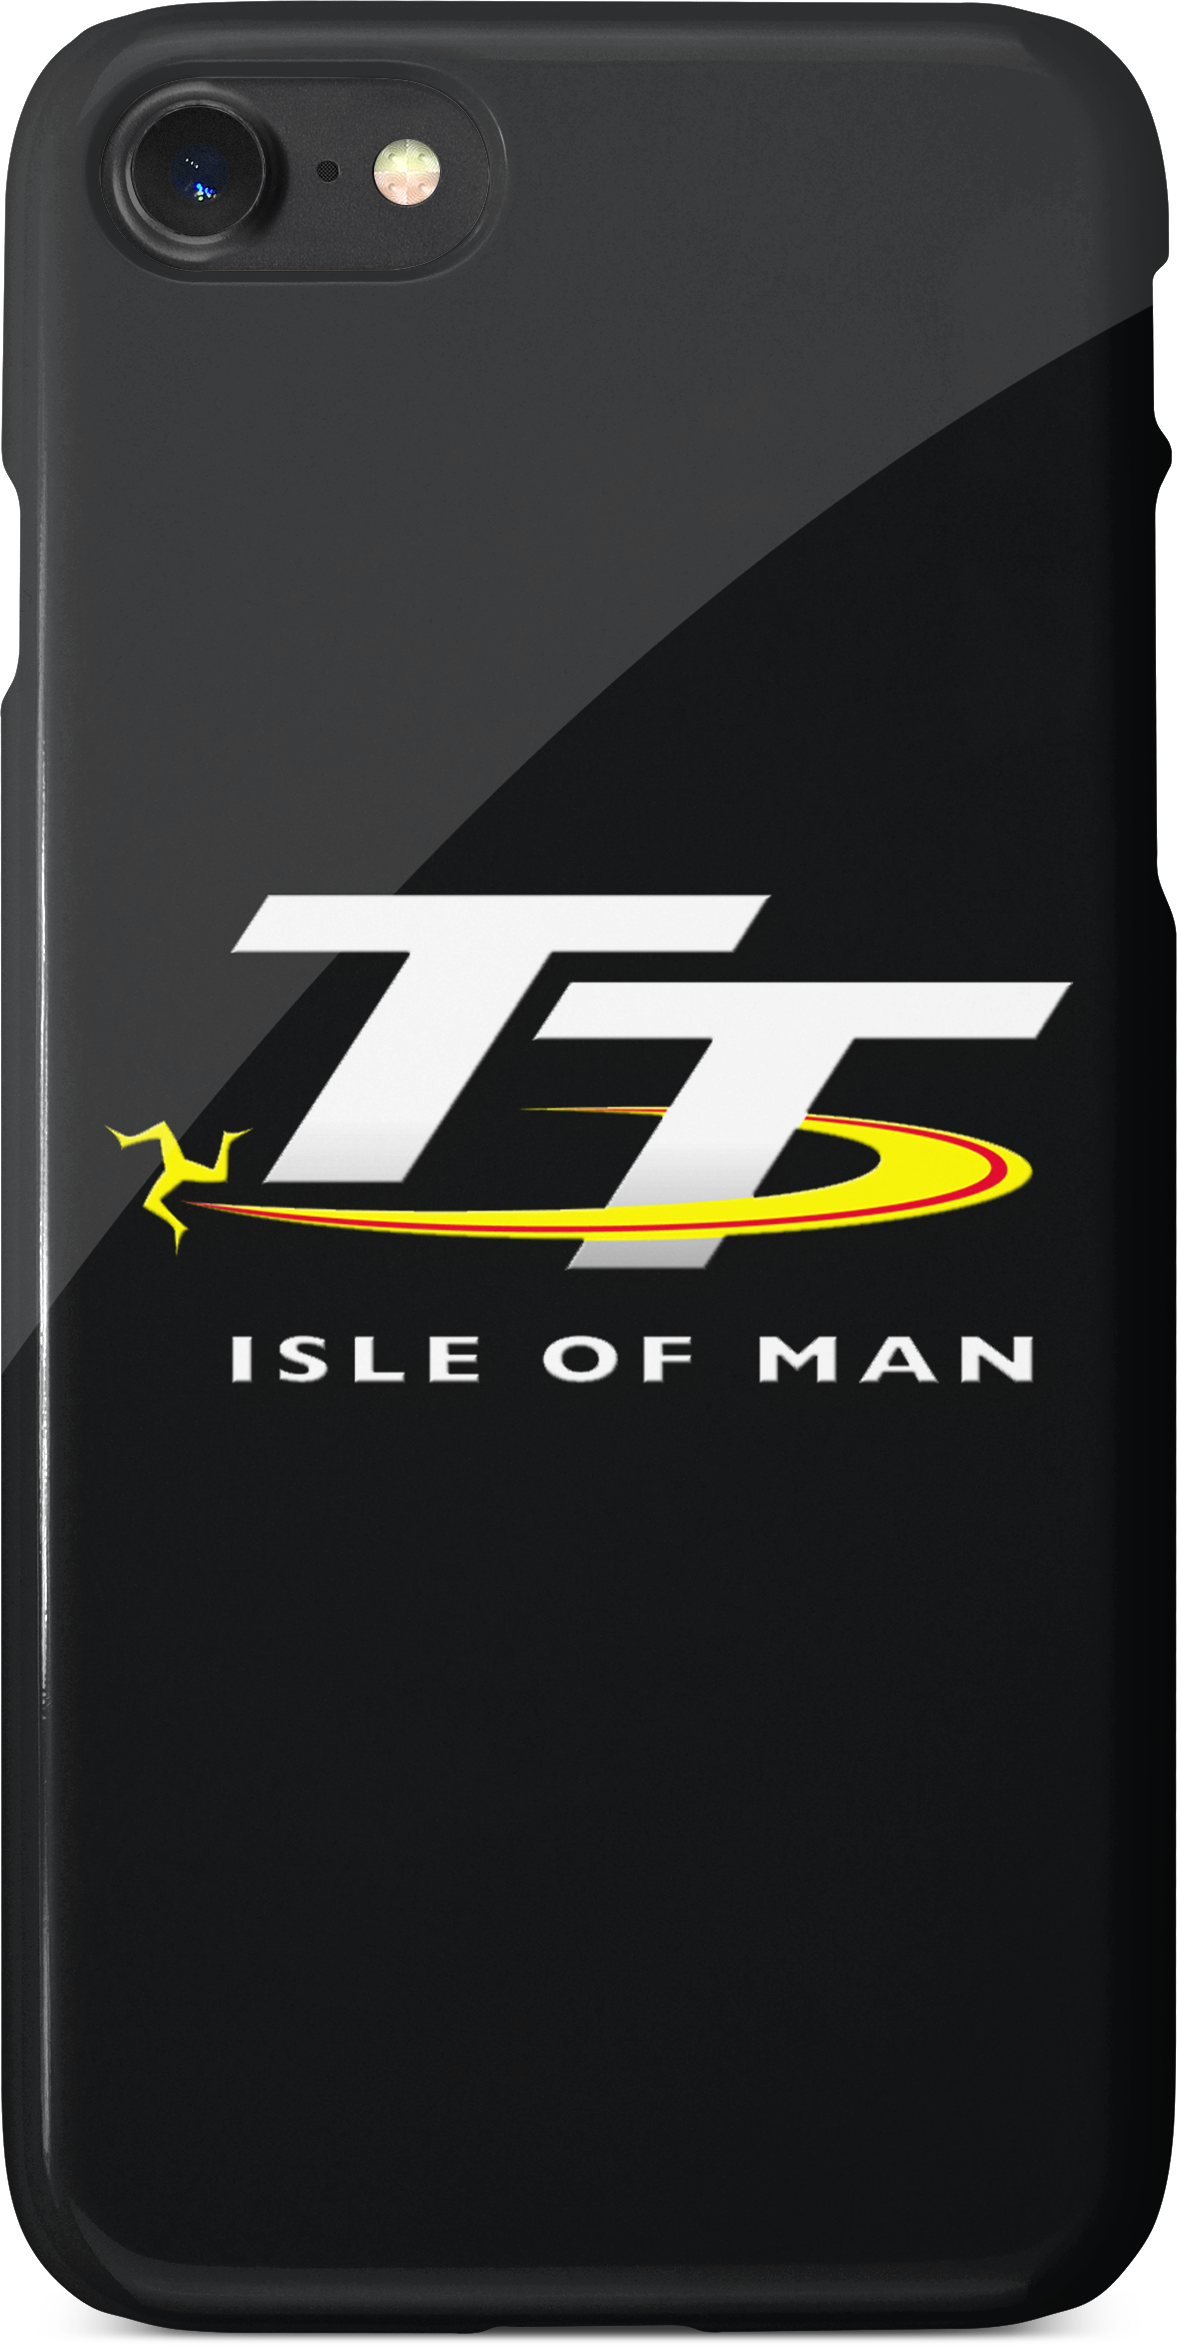 Isle of Man TT Logo Phone Case